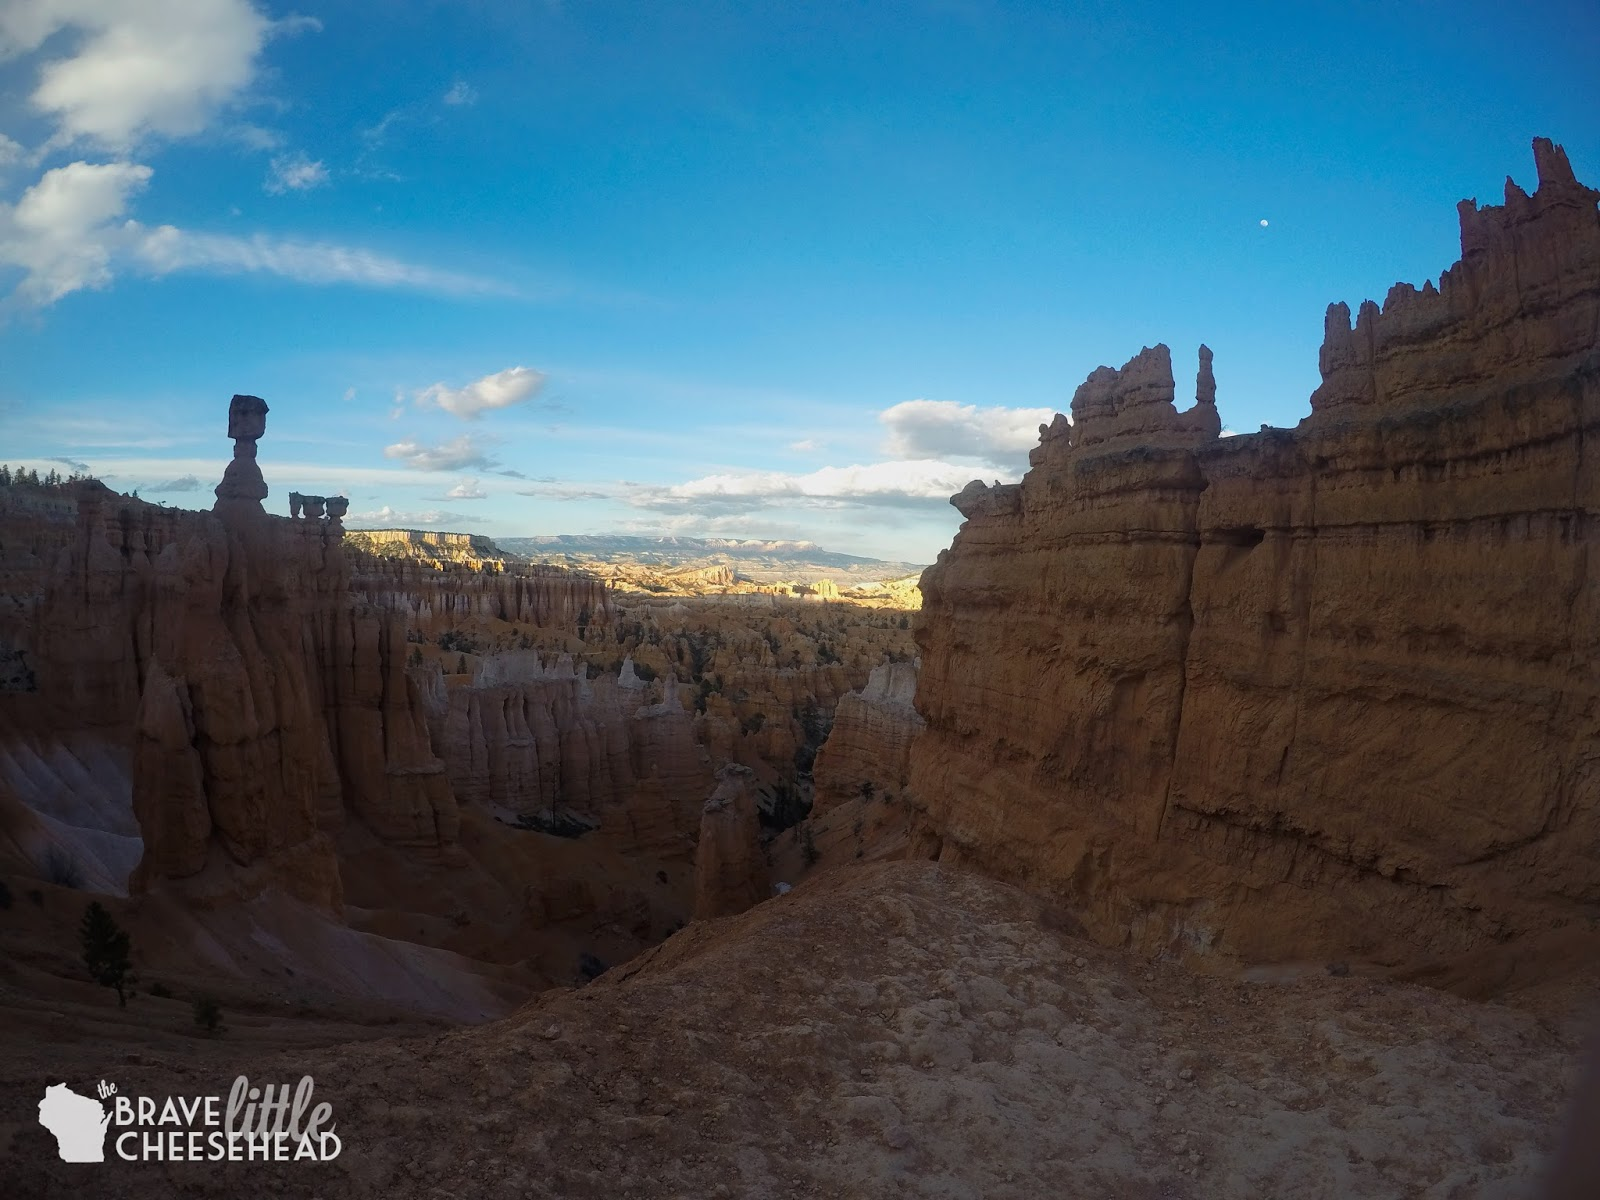 4-Day Road Trip Through the Southwest U.S. | Brave Little Cheesehead